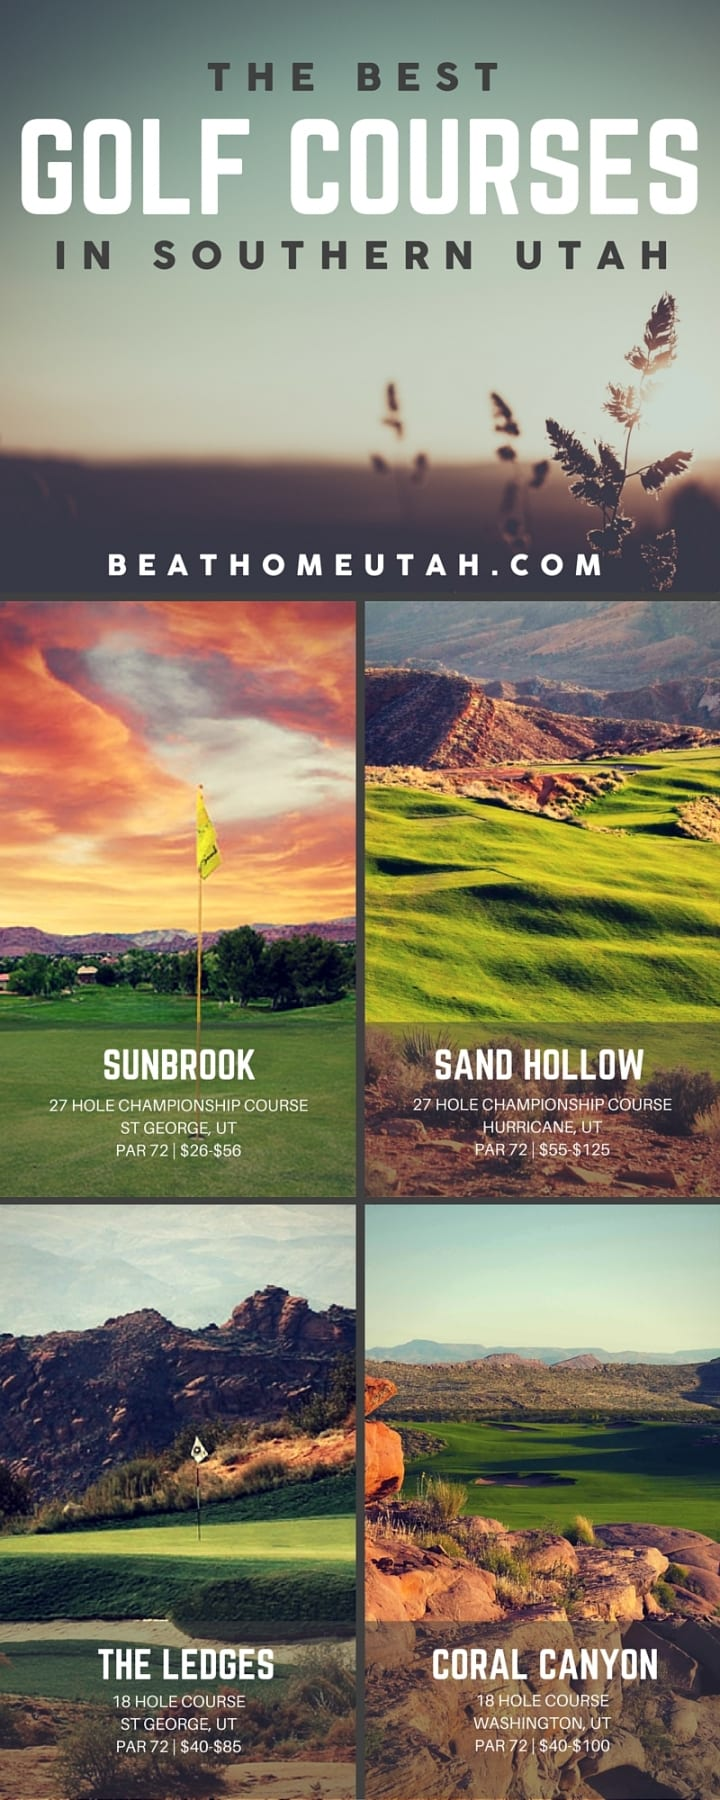 the best golf courses in st george